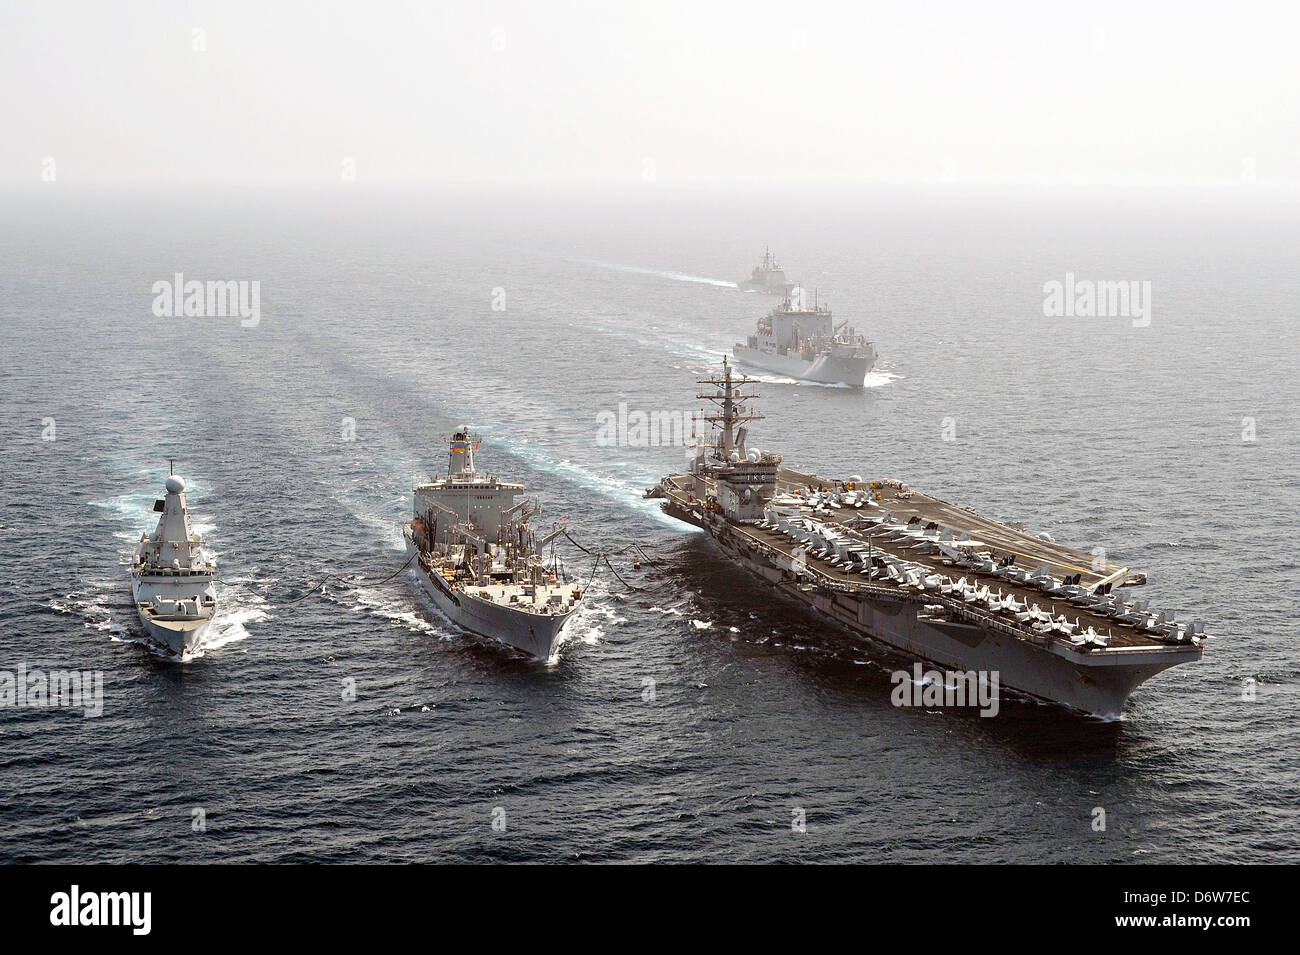 The British destroyer HMS Dragon and the US Navy aircraft carrier USS Dwight D. Eisenhower steam alongside the fleet - Stock Image